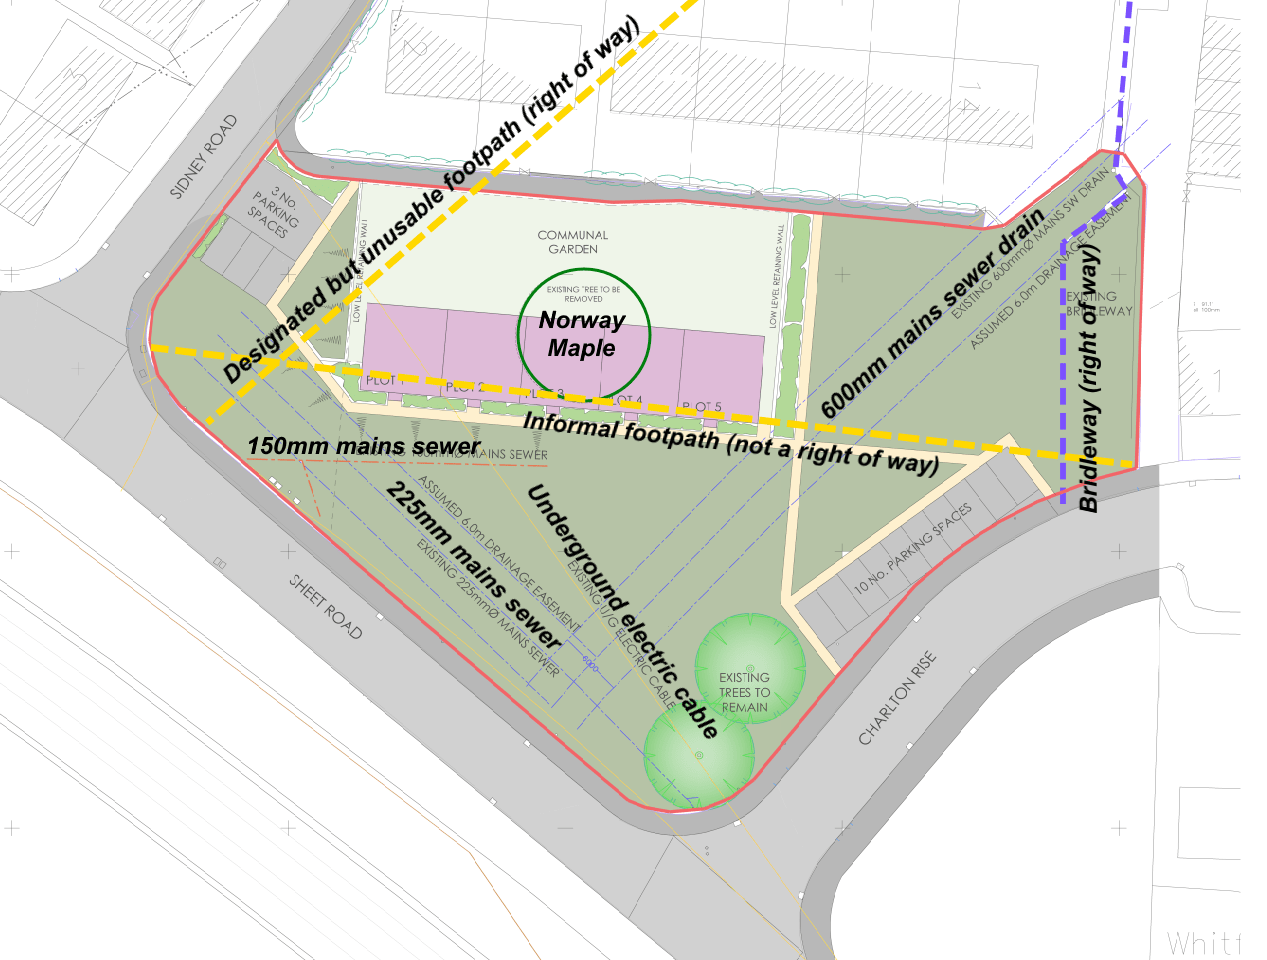 New plans for Sidney Road bungalows – the Norway Maple still gets the chop